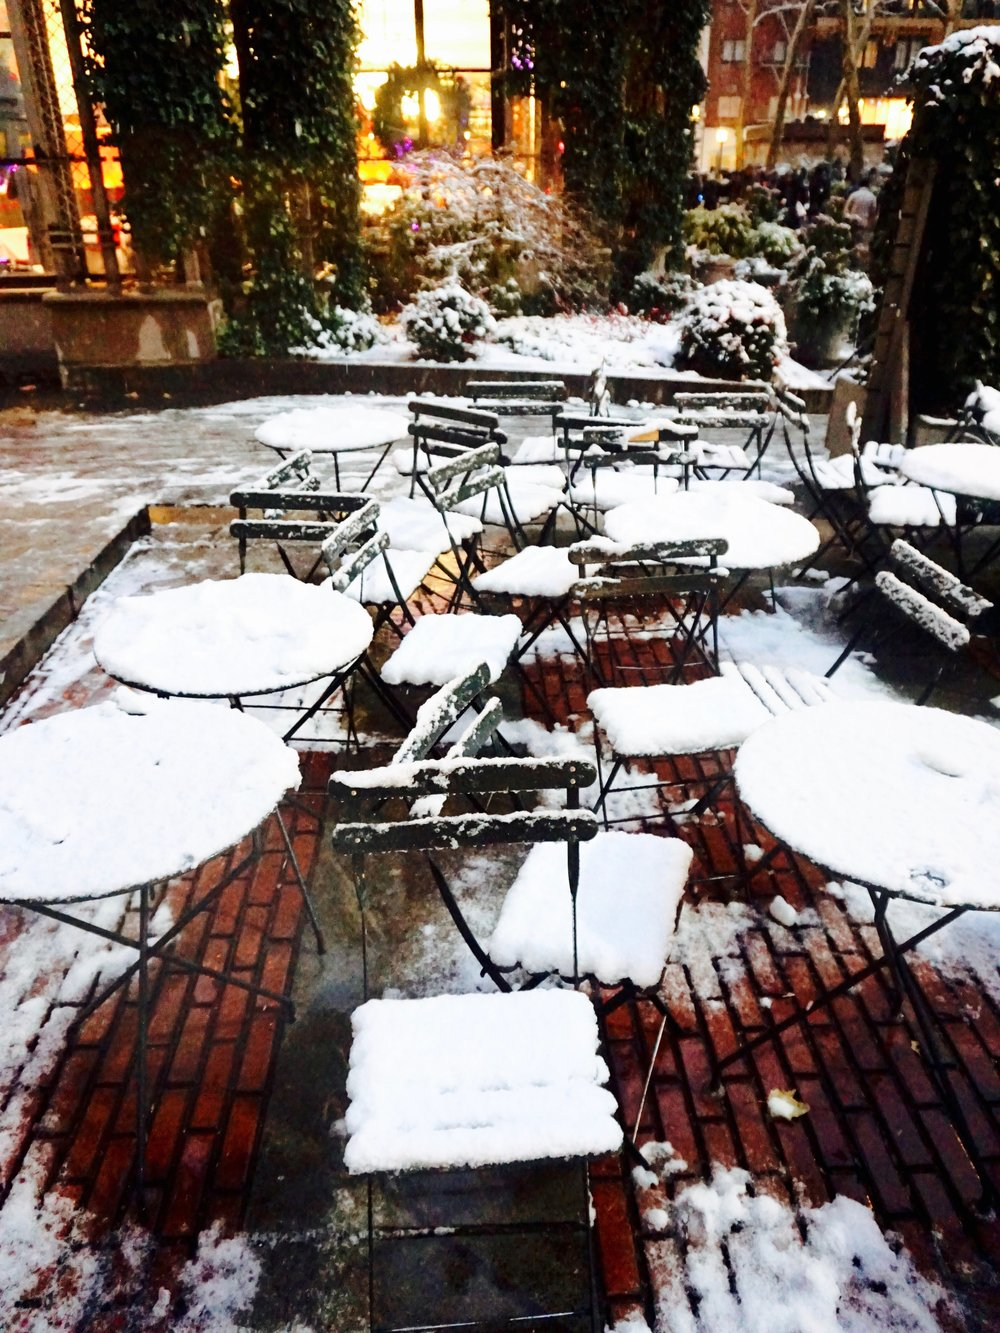 Snow in Bryant Park, New York City